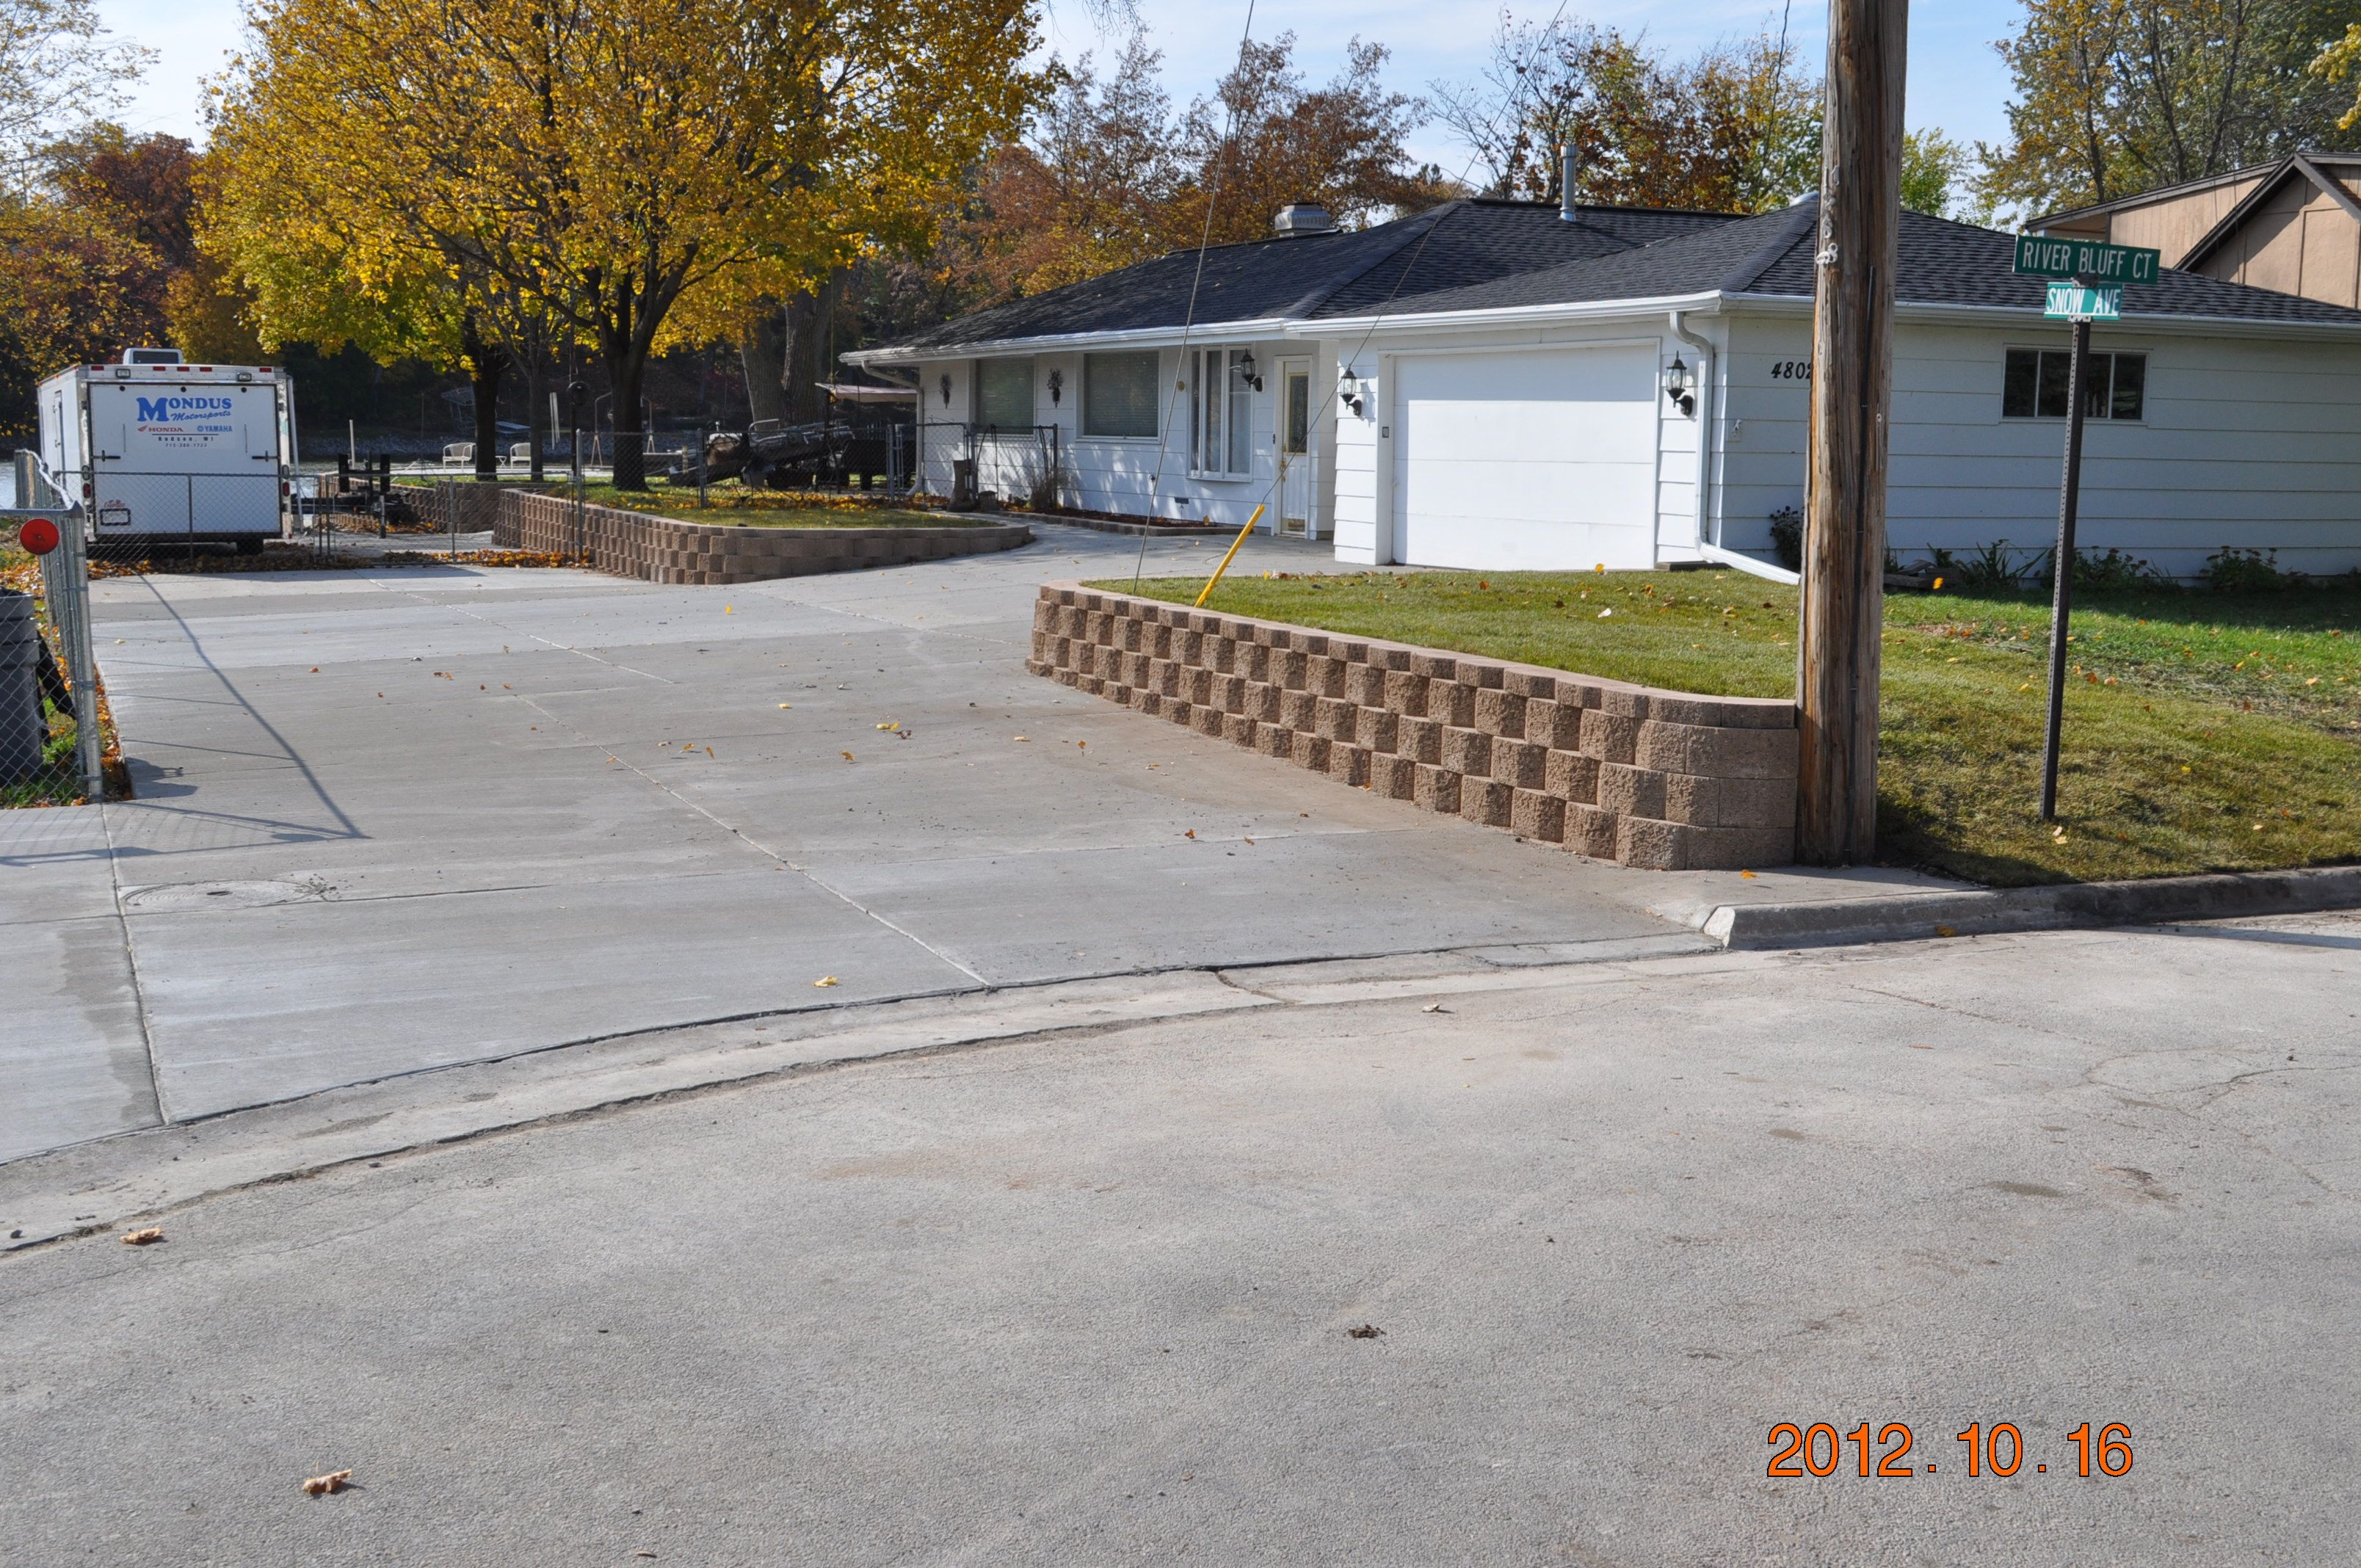 Smaller retaining walls like this one help to support slopes and level off yards.